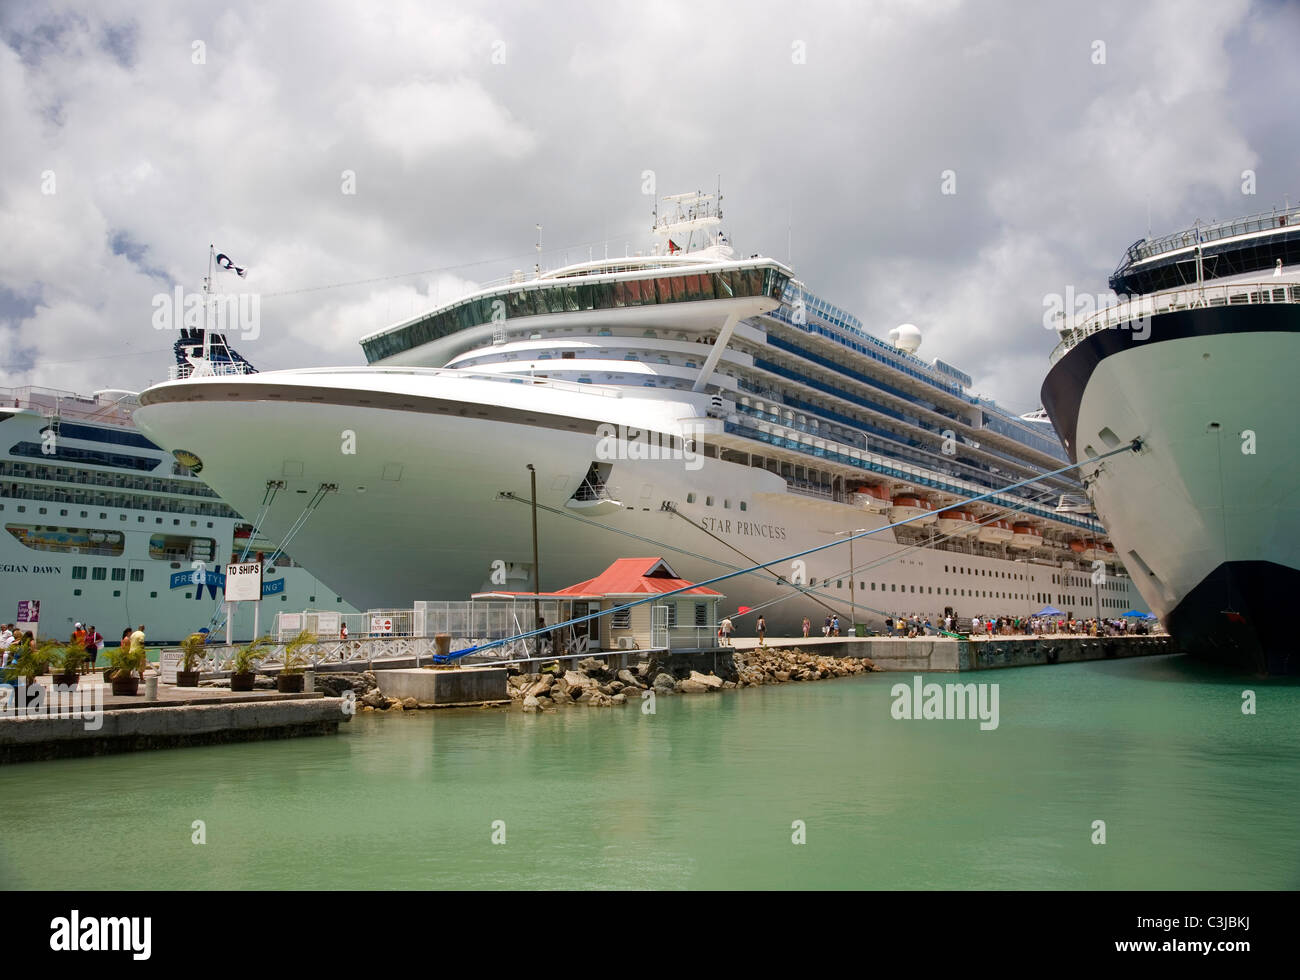 Three Cruise Liners at Dock in Antigua - Stock Image